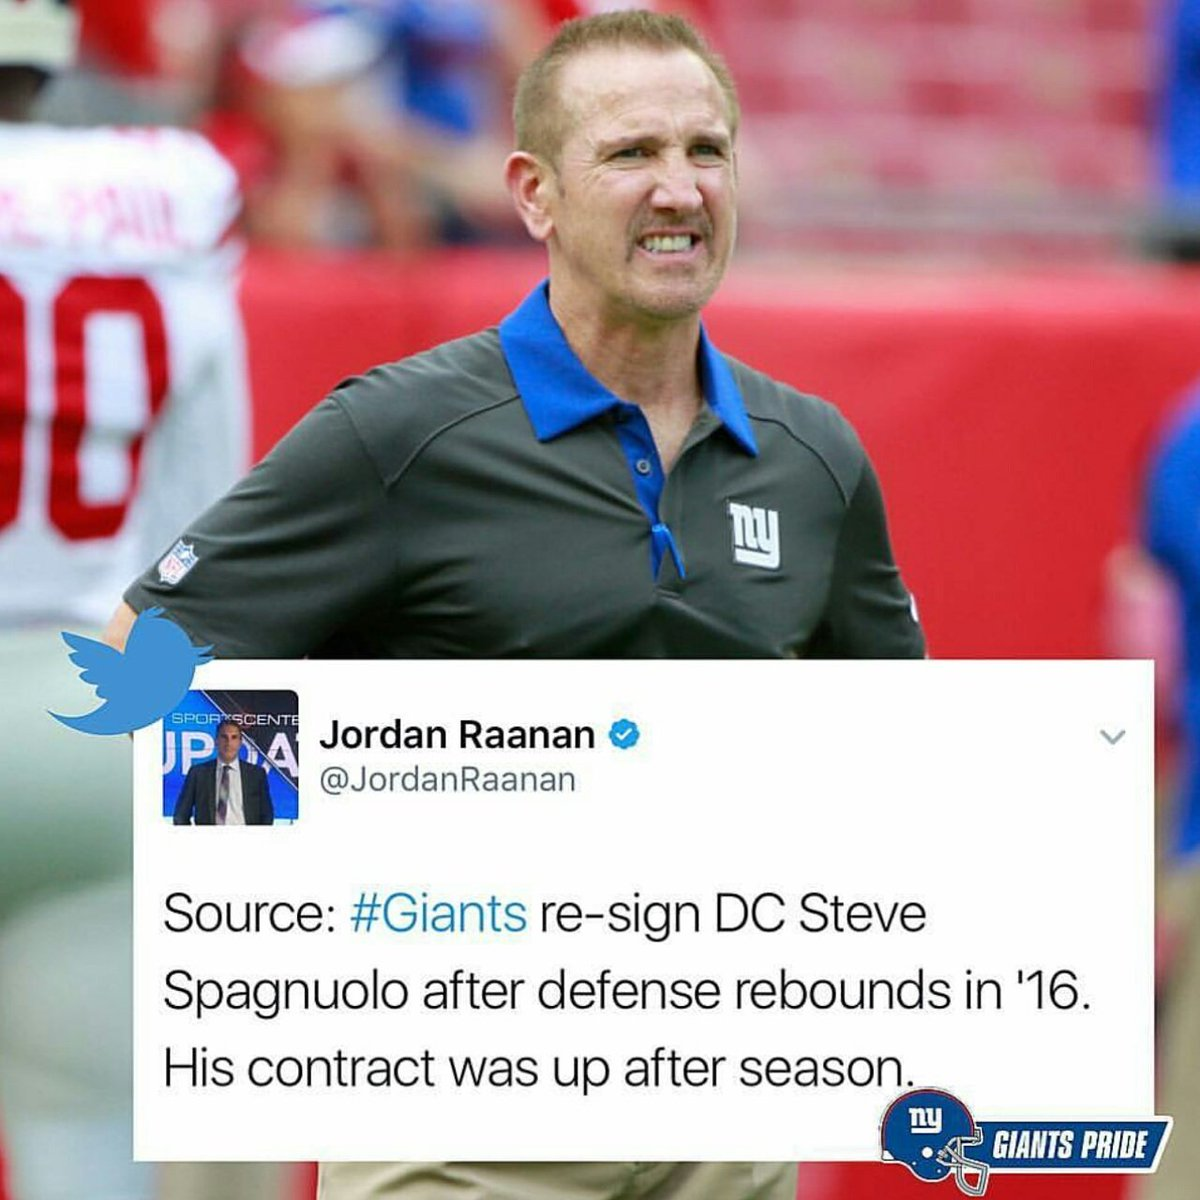 RE-SIGNED #deserved #Giants #GiantsPride #Coach #defense <br>http://pic.twitter.com/wO5pL4kax7